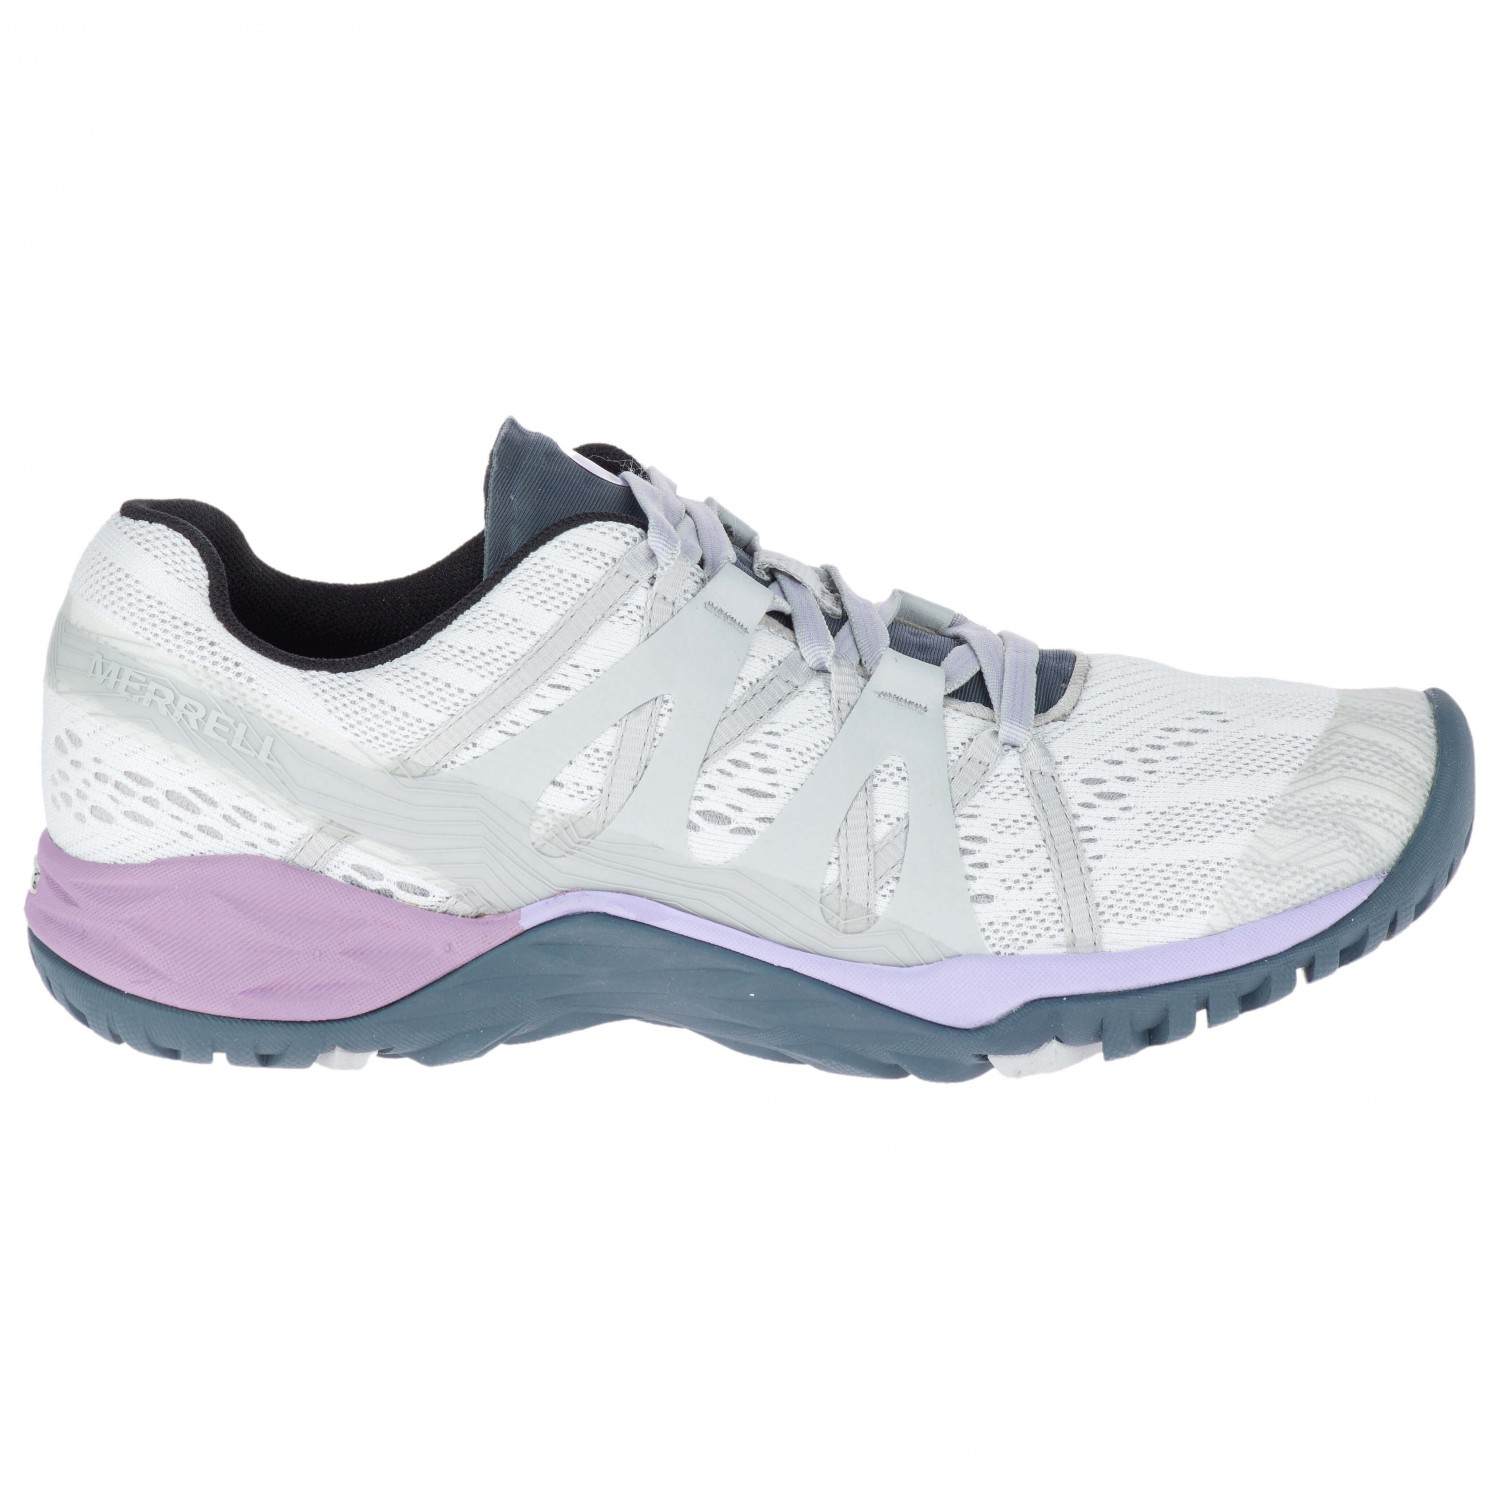 5e888aaa09d2 merrell-womens-siren-hex-q2-e-mesh-multisport-shoes-detail-3.jpg